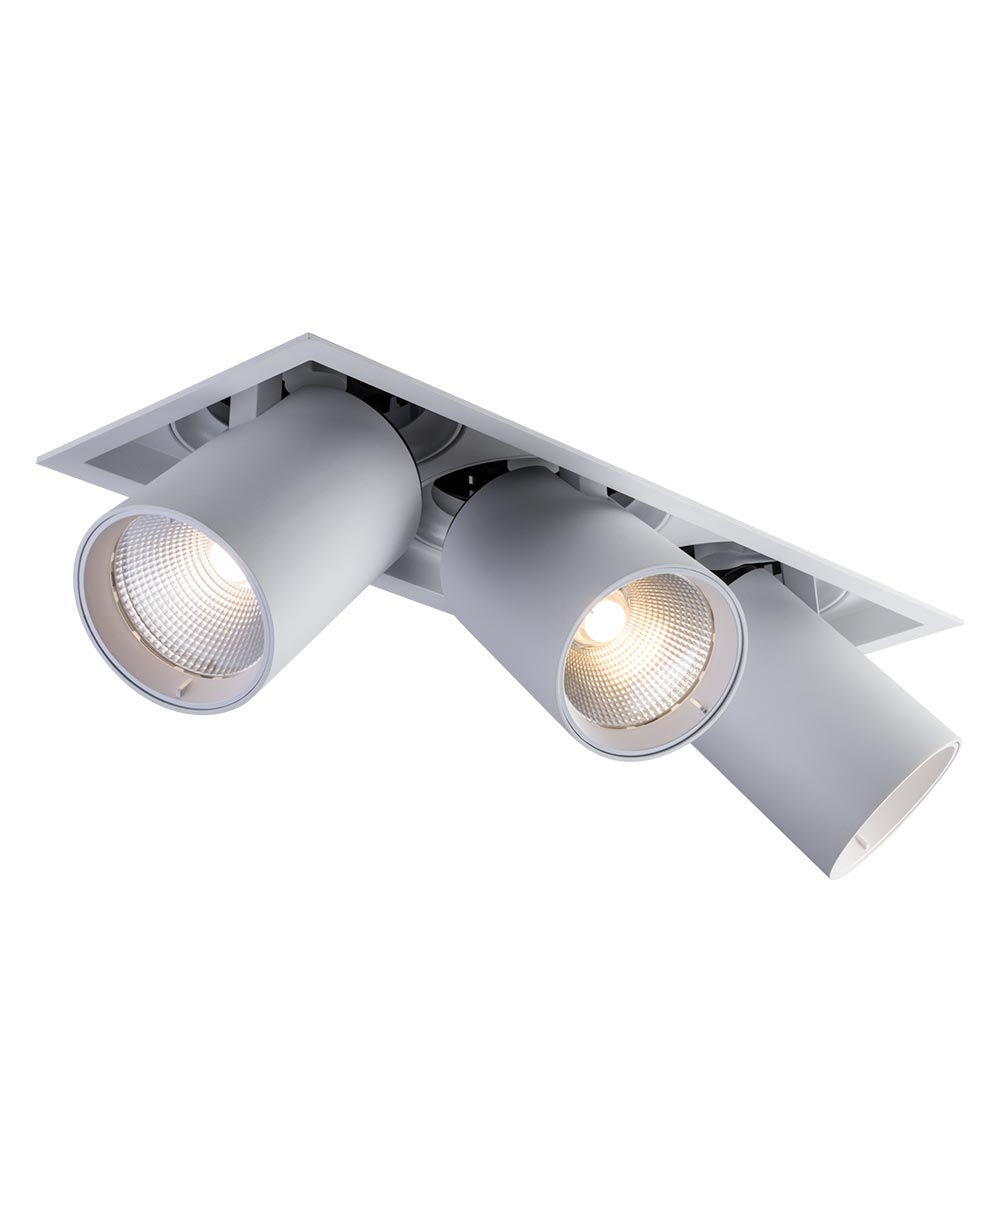 Sigma 4 3-Light Linear Pulldown LED Fixture